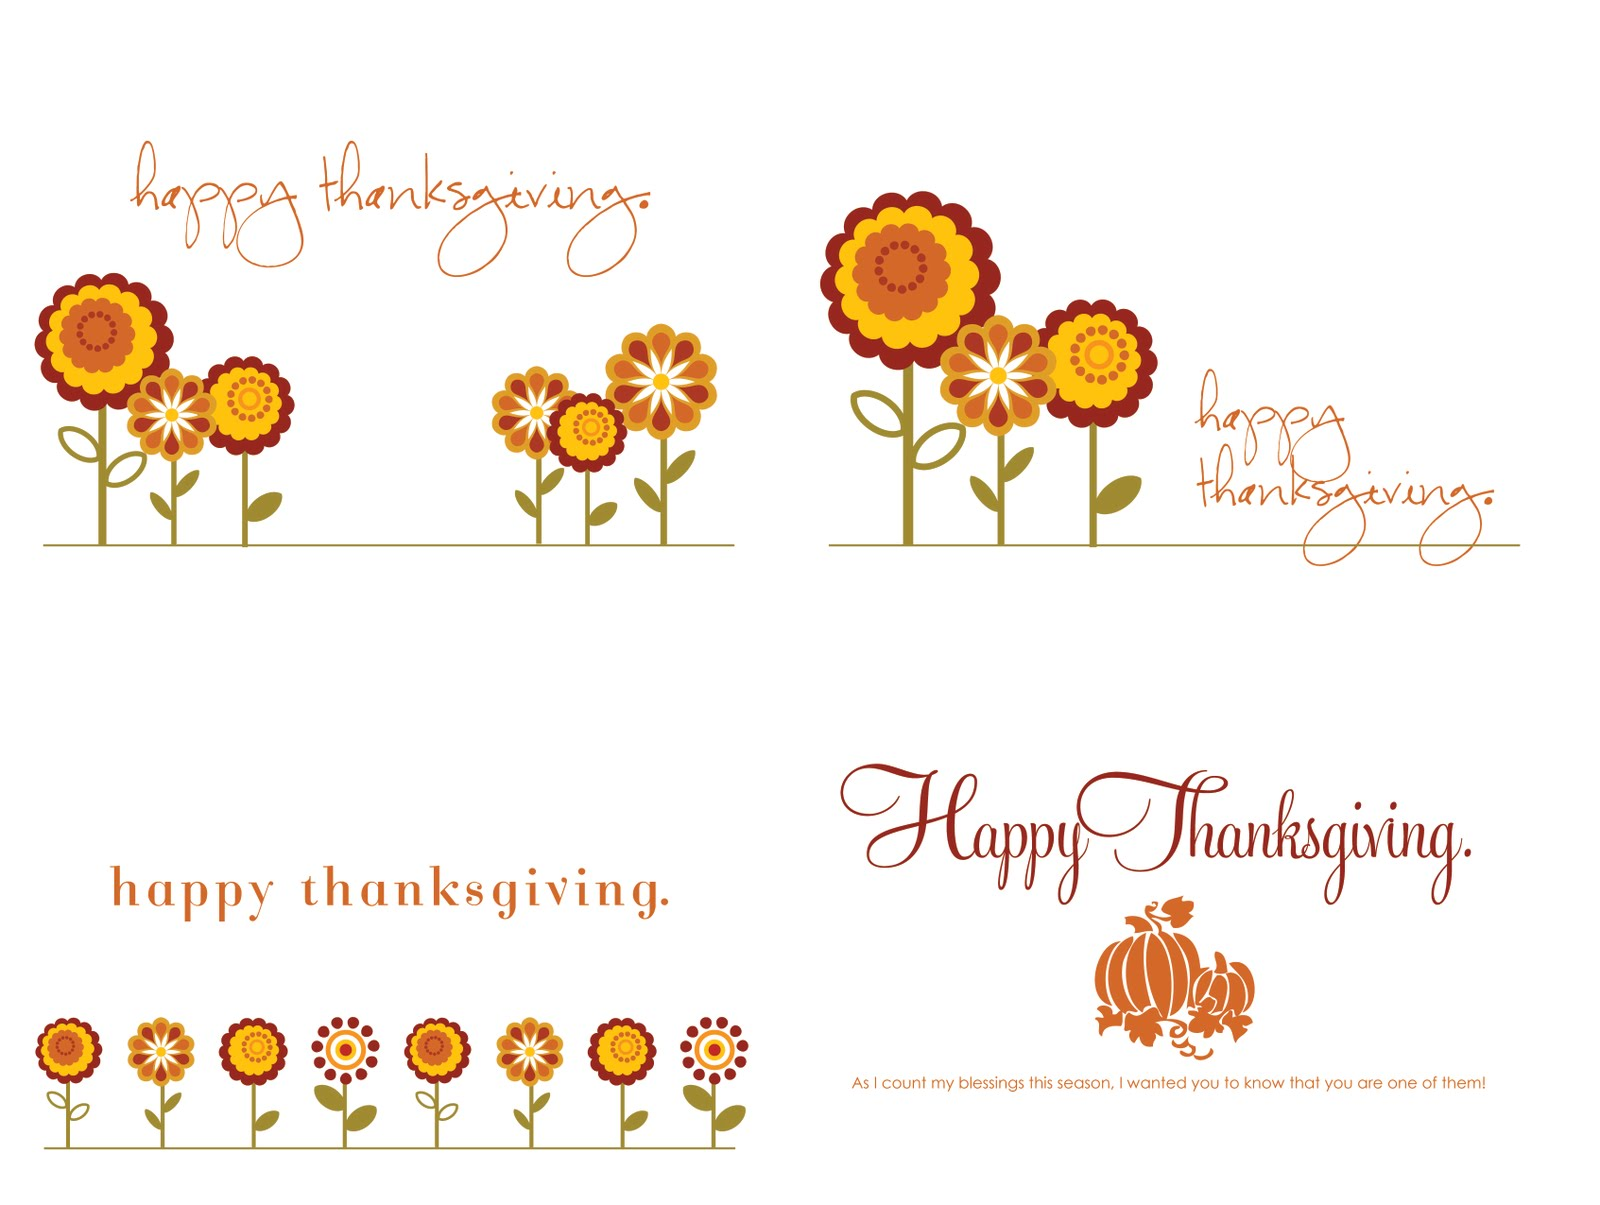 Thankgiving cards pasoevolist thankgiving cards kristyandbryce Choice Image